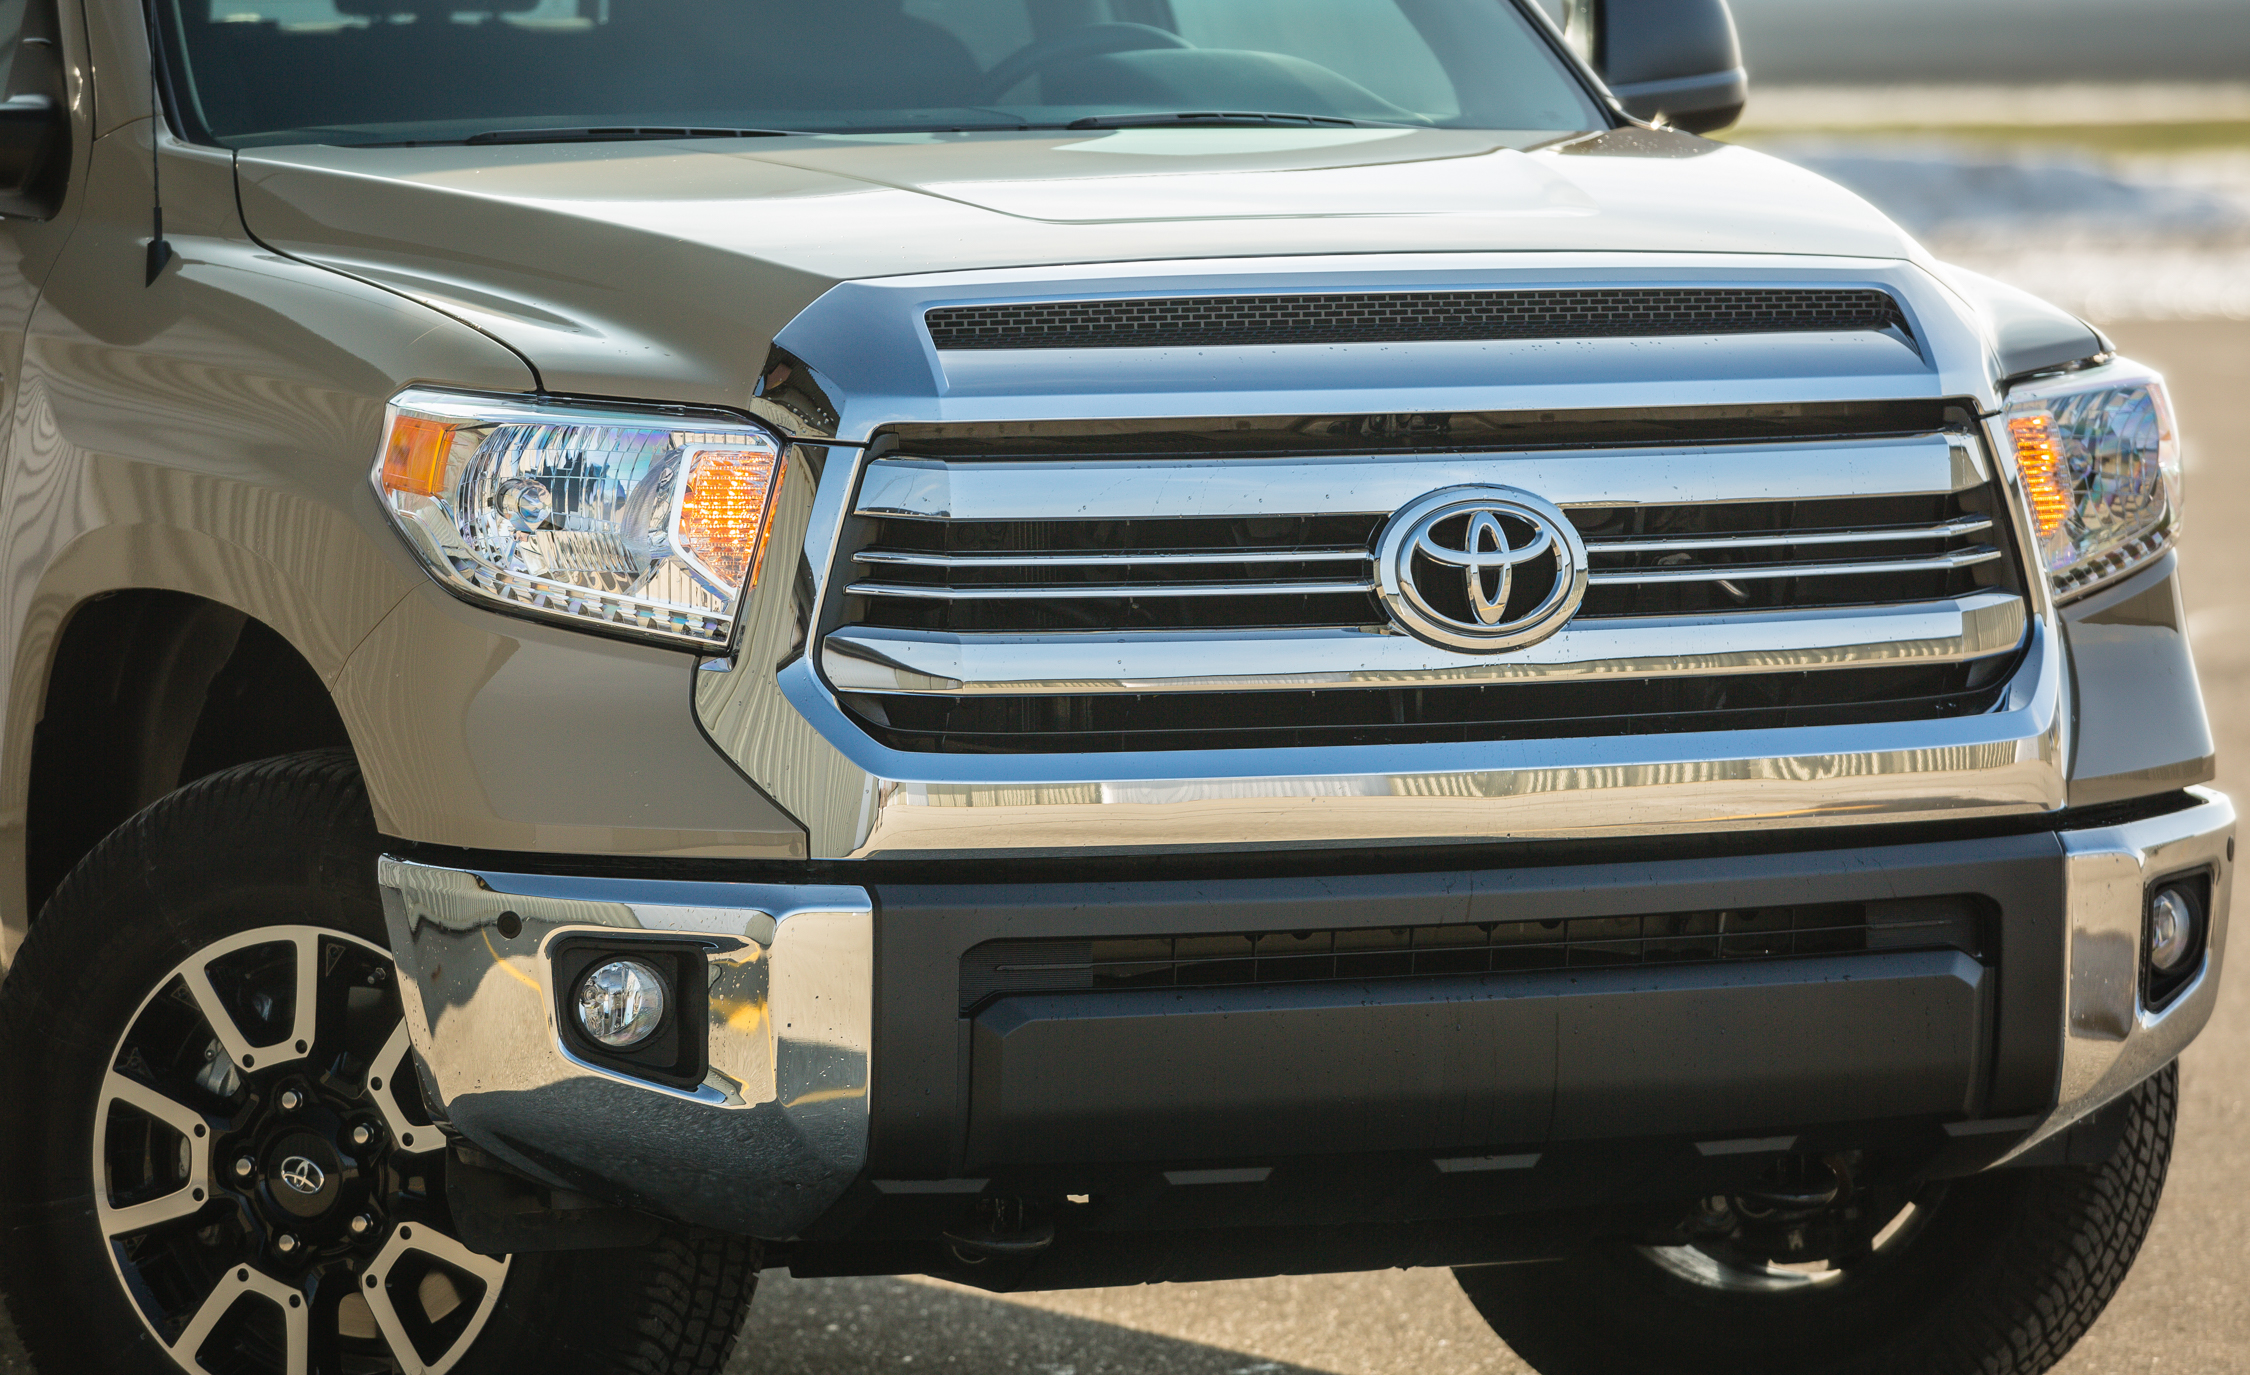 2017 Toyota Tundra Exterior View Front Bumper And Grille (View 20 of 24)